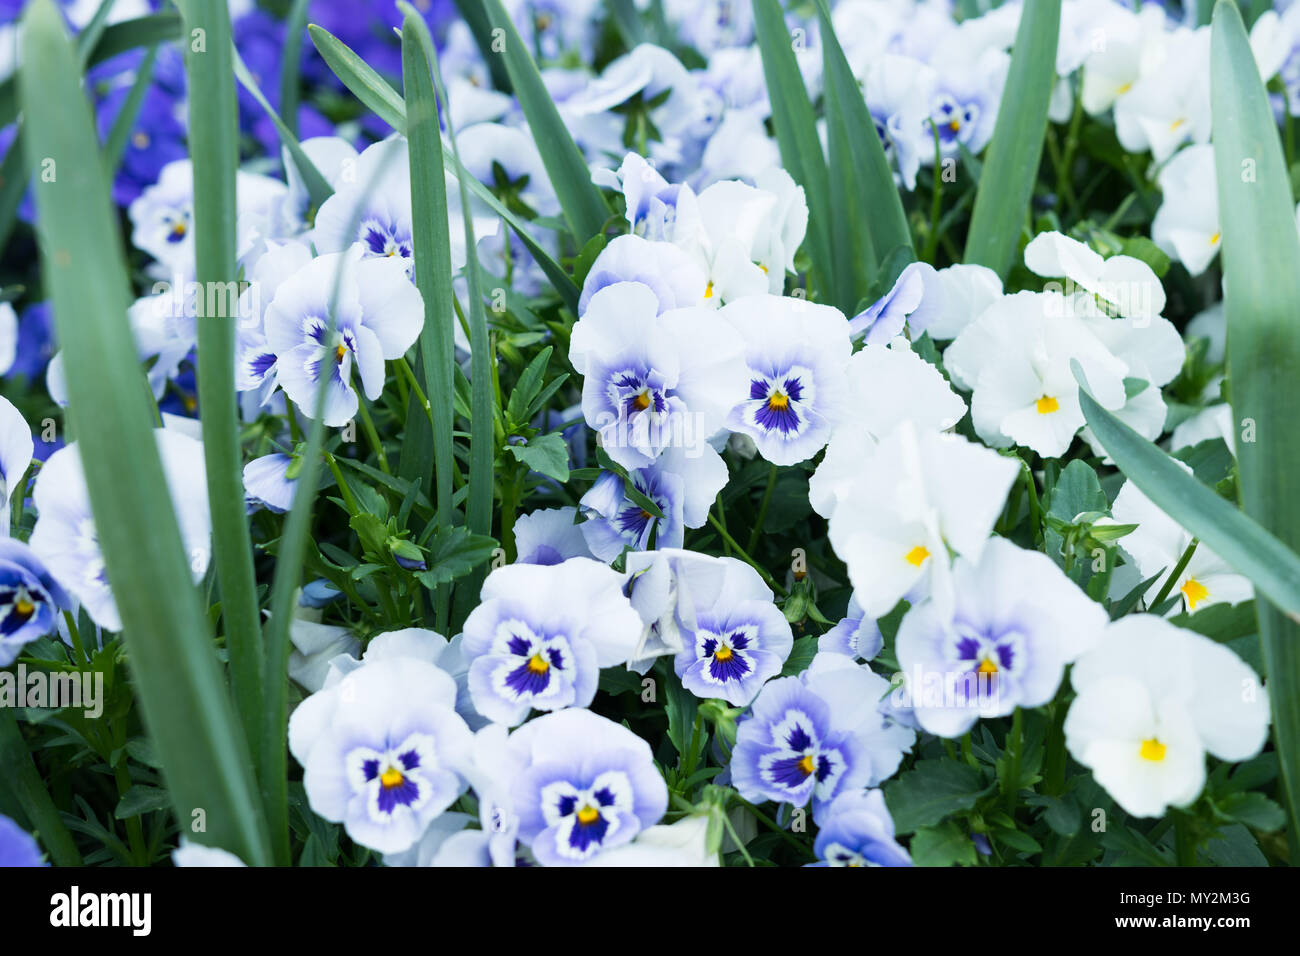 Closeup Of Small Purple And White Flowers Stock Photo 188759076 Alamy